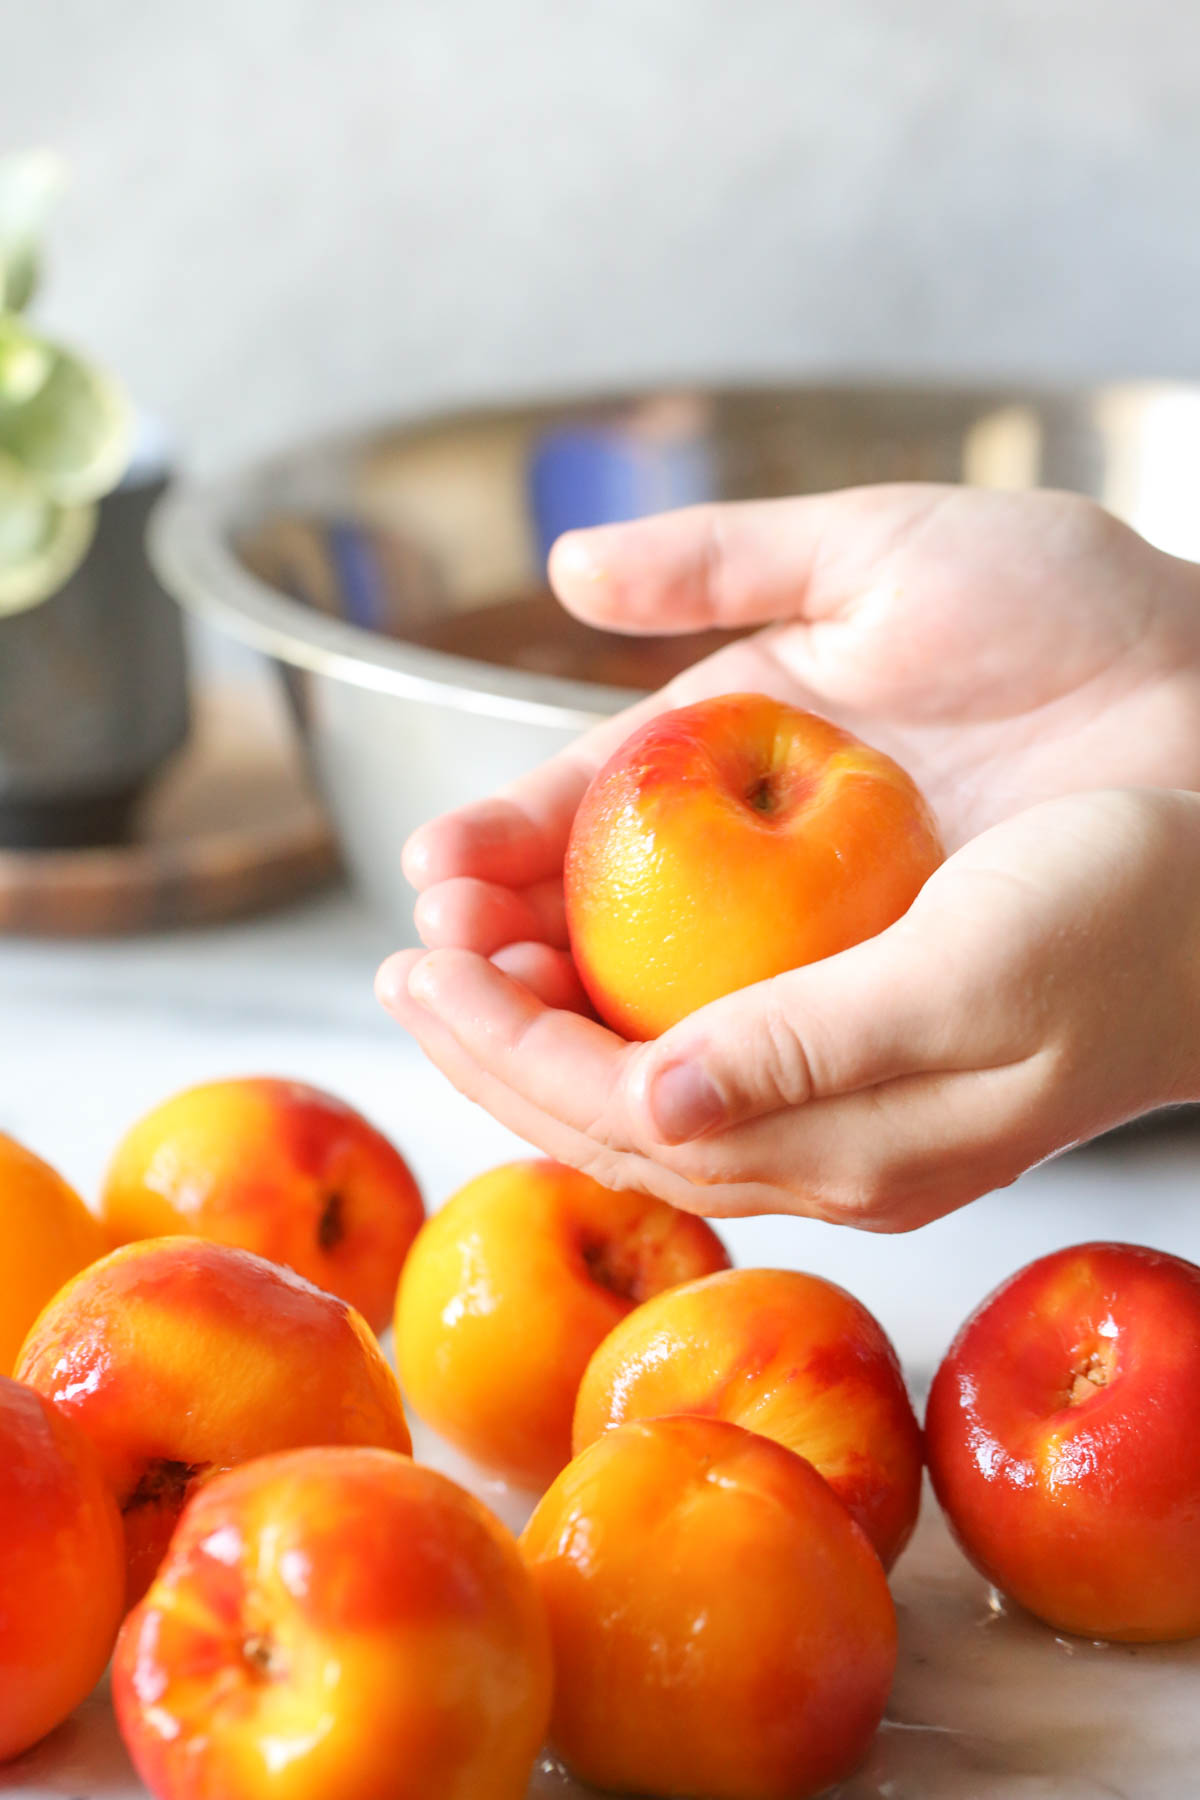 A hand holding a peach that has been peeled, with several more peeled peaches under the hand.